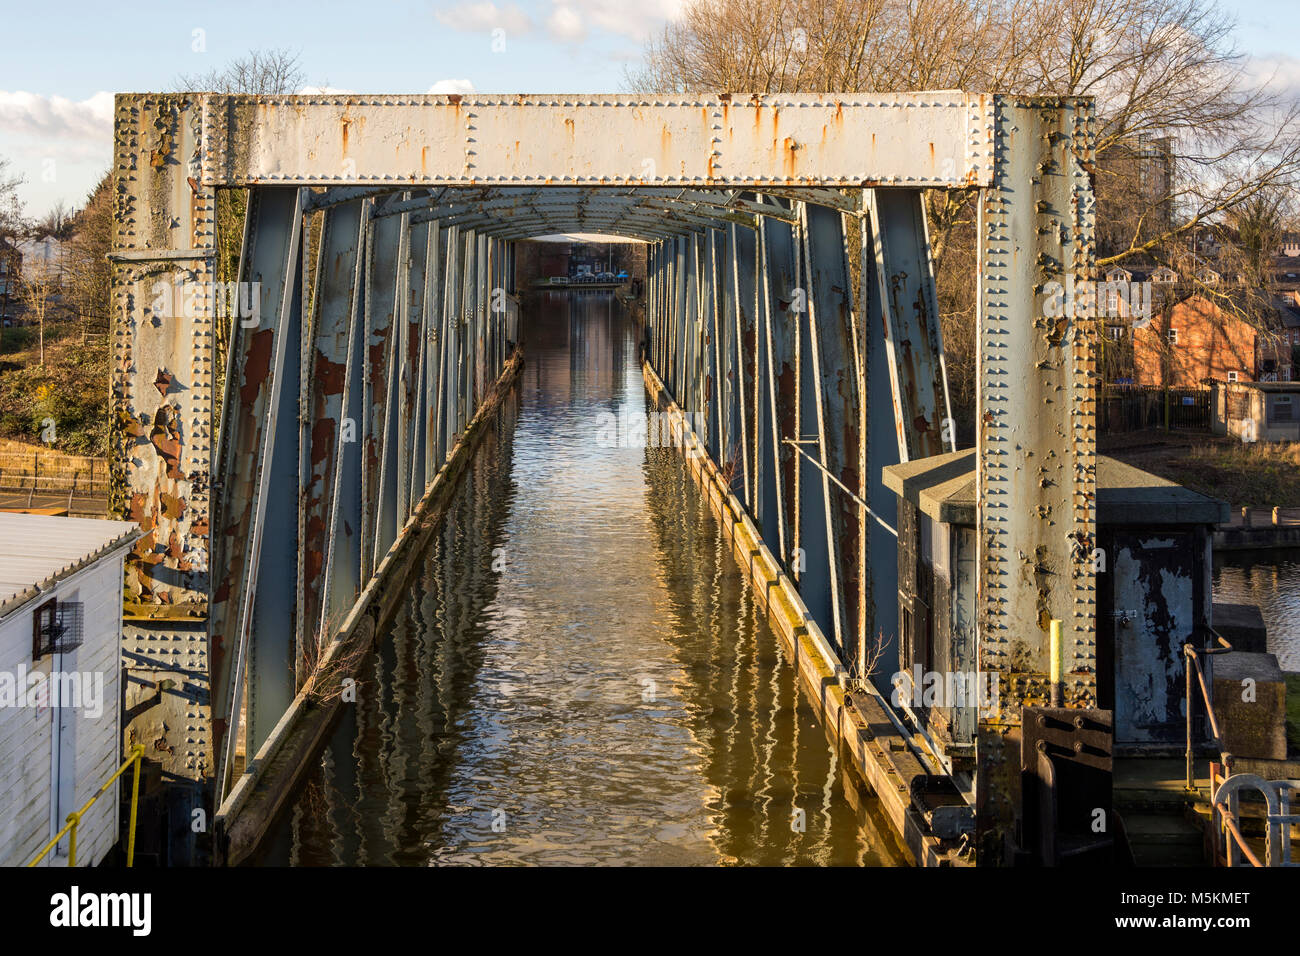 Barton Swing Aqueduct (1894) which carries the Bridgewater Canal over the Manchester Ship Canal at Barton-upon-Irwell, - Stock Image